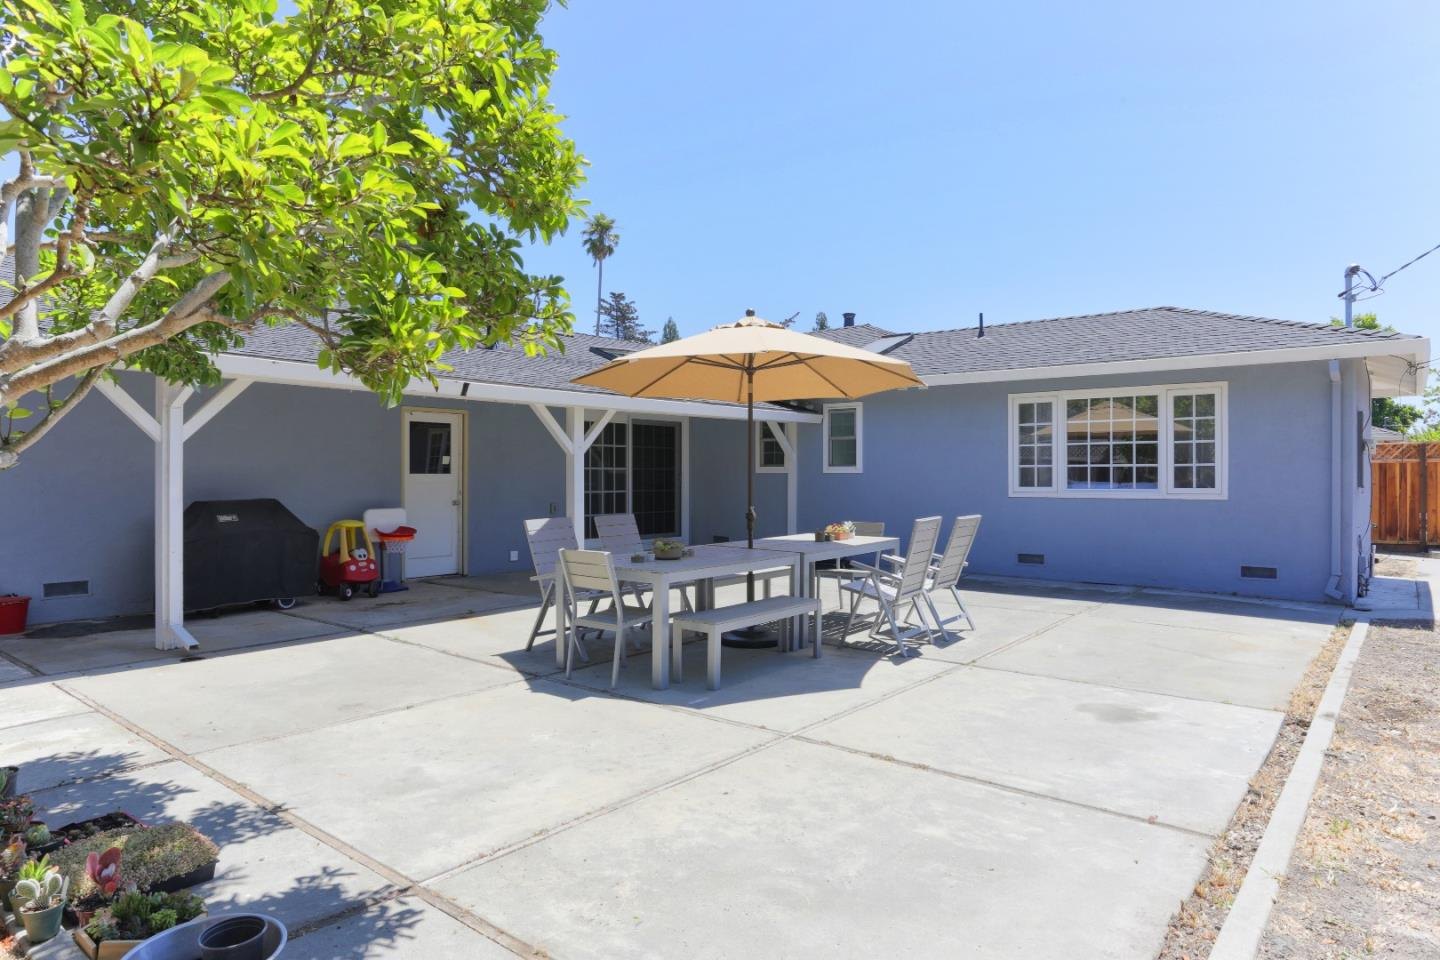 Additional photo for property listing at 139 Roger Drive  Santa Cruz, Kalifornien 95060 Vereinigte Staaten